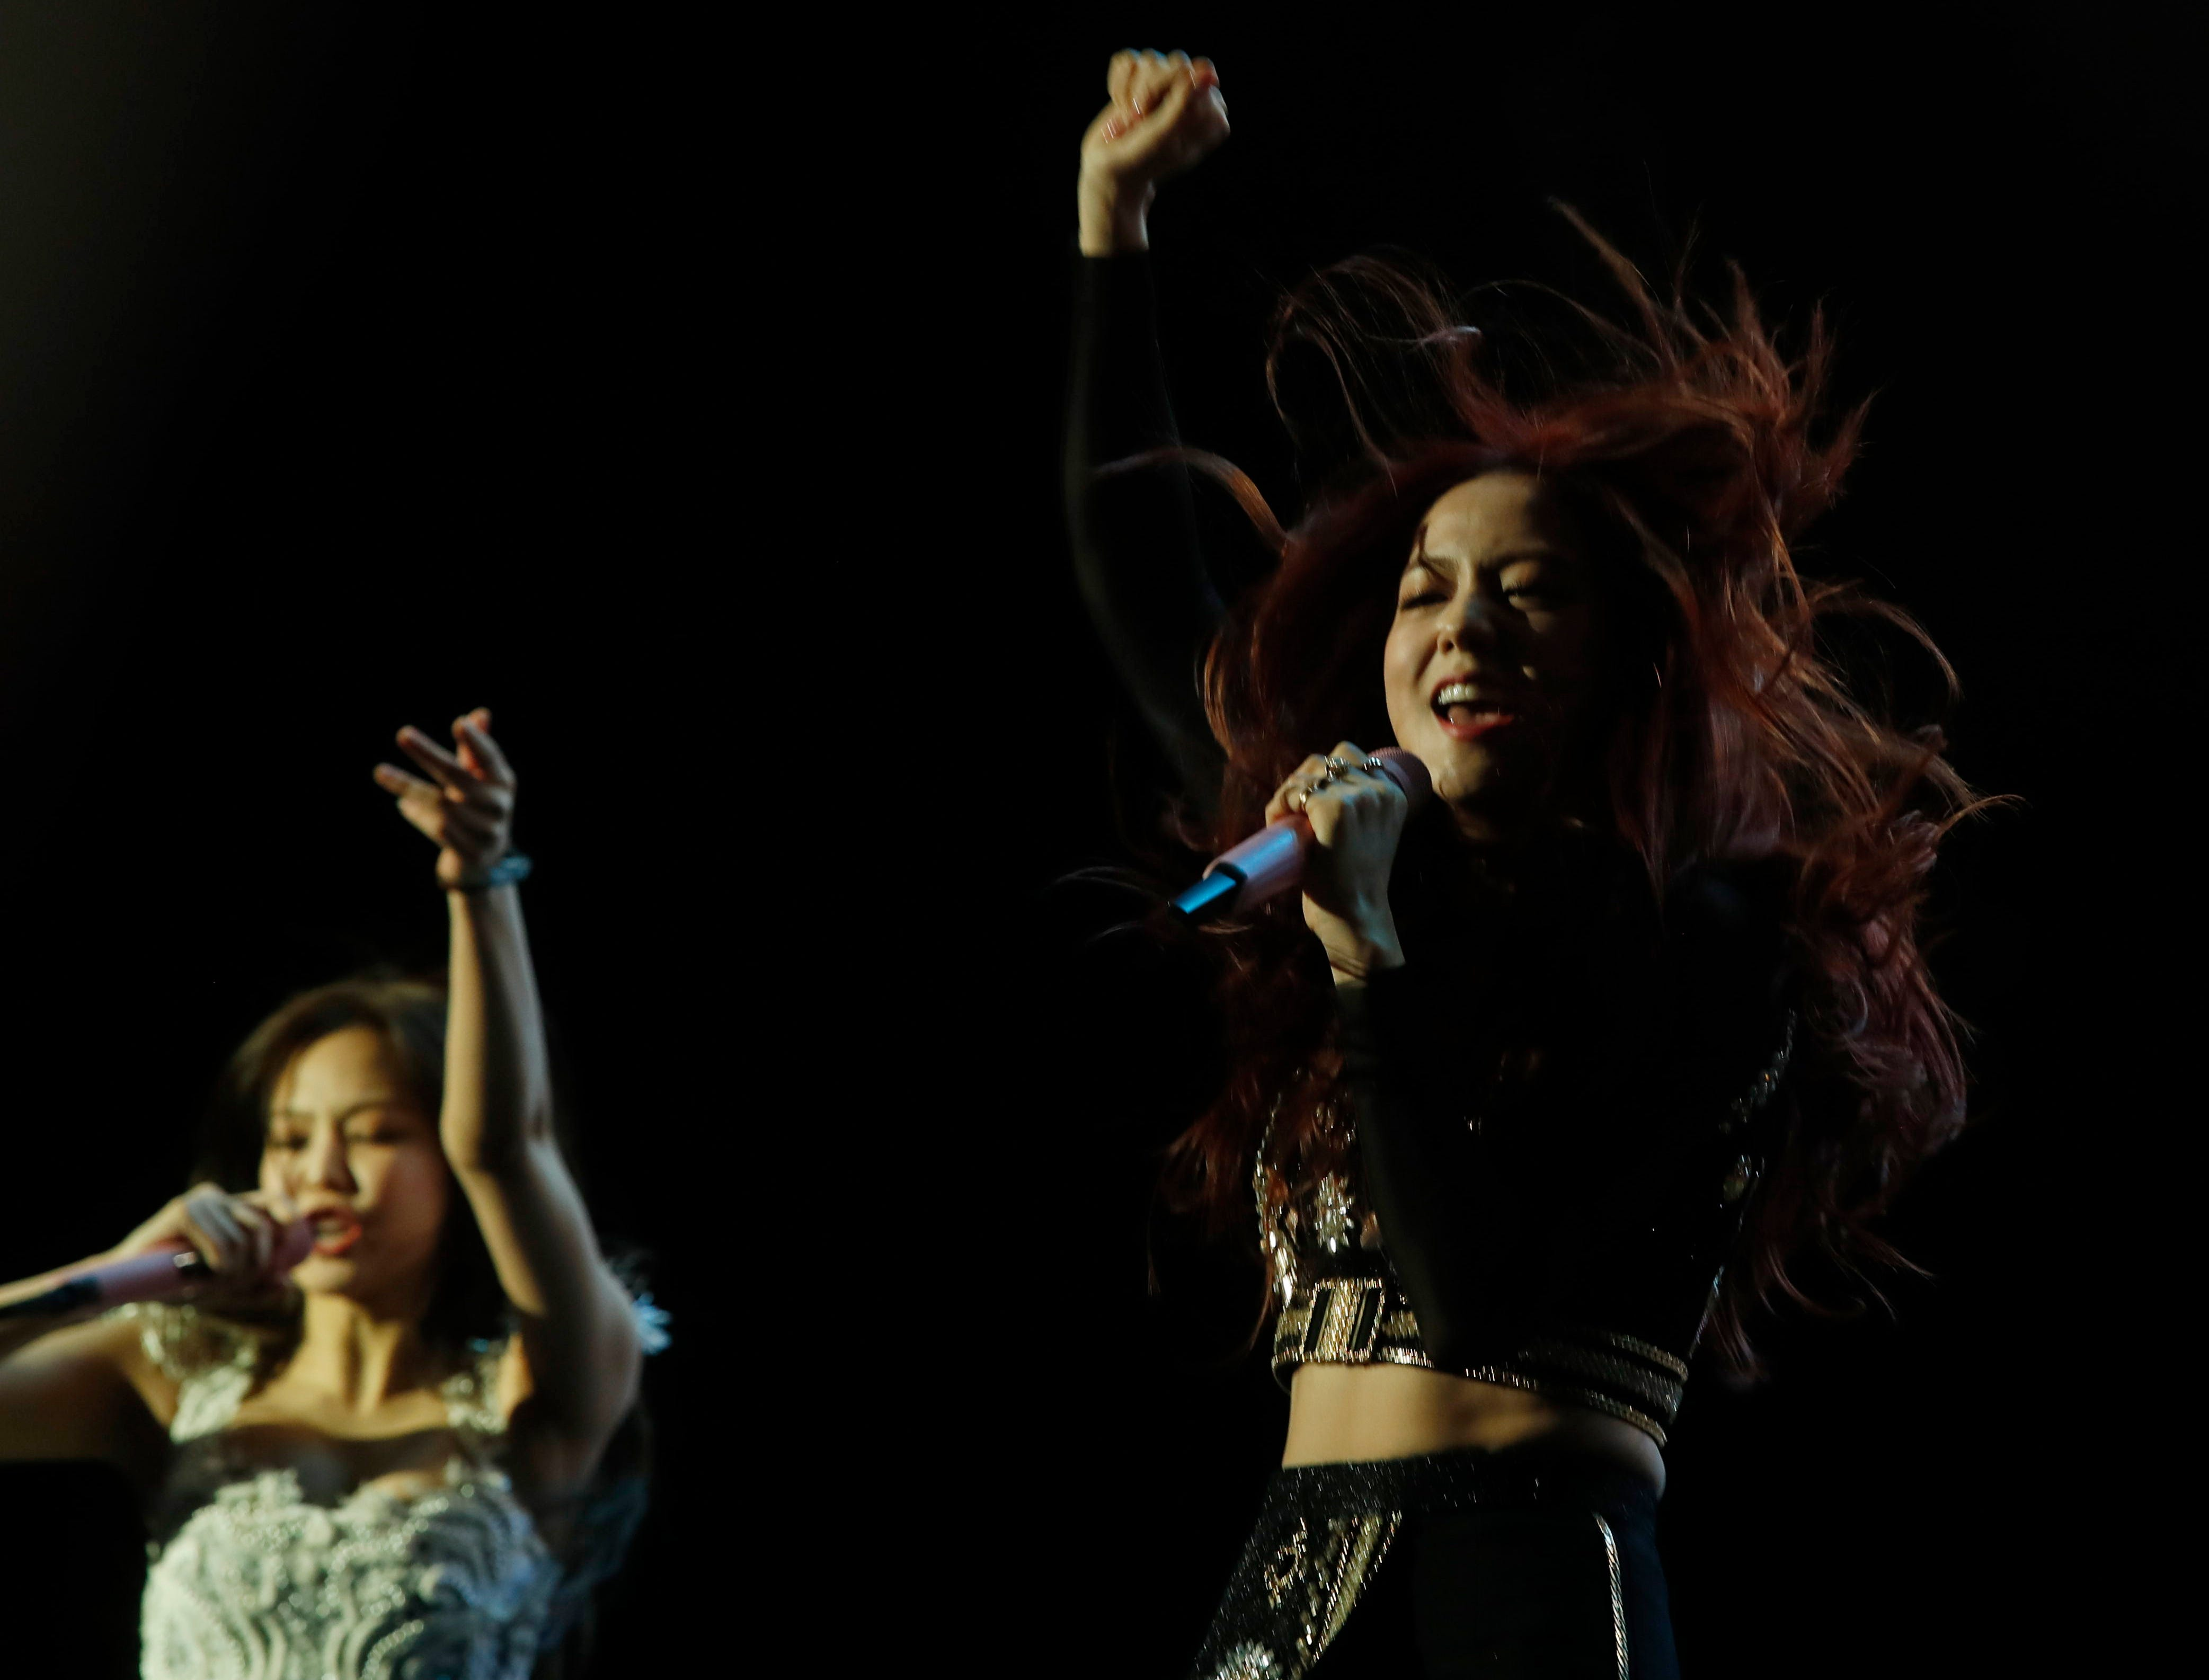 BLACKPINK performs on the Sahara Tent during the 2019 Coachella Valley Music and Arts Festival held at the Empire Polo Club in Indio, California on April 12, 2019.